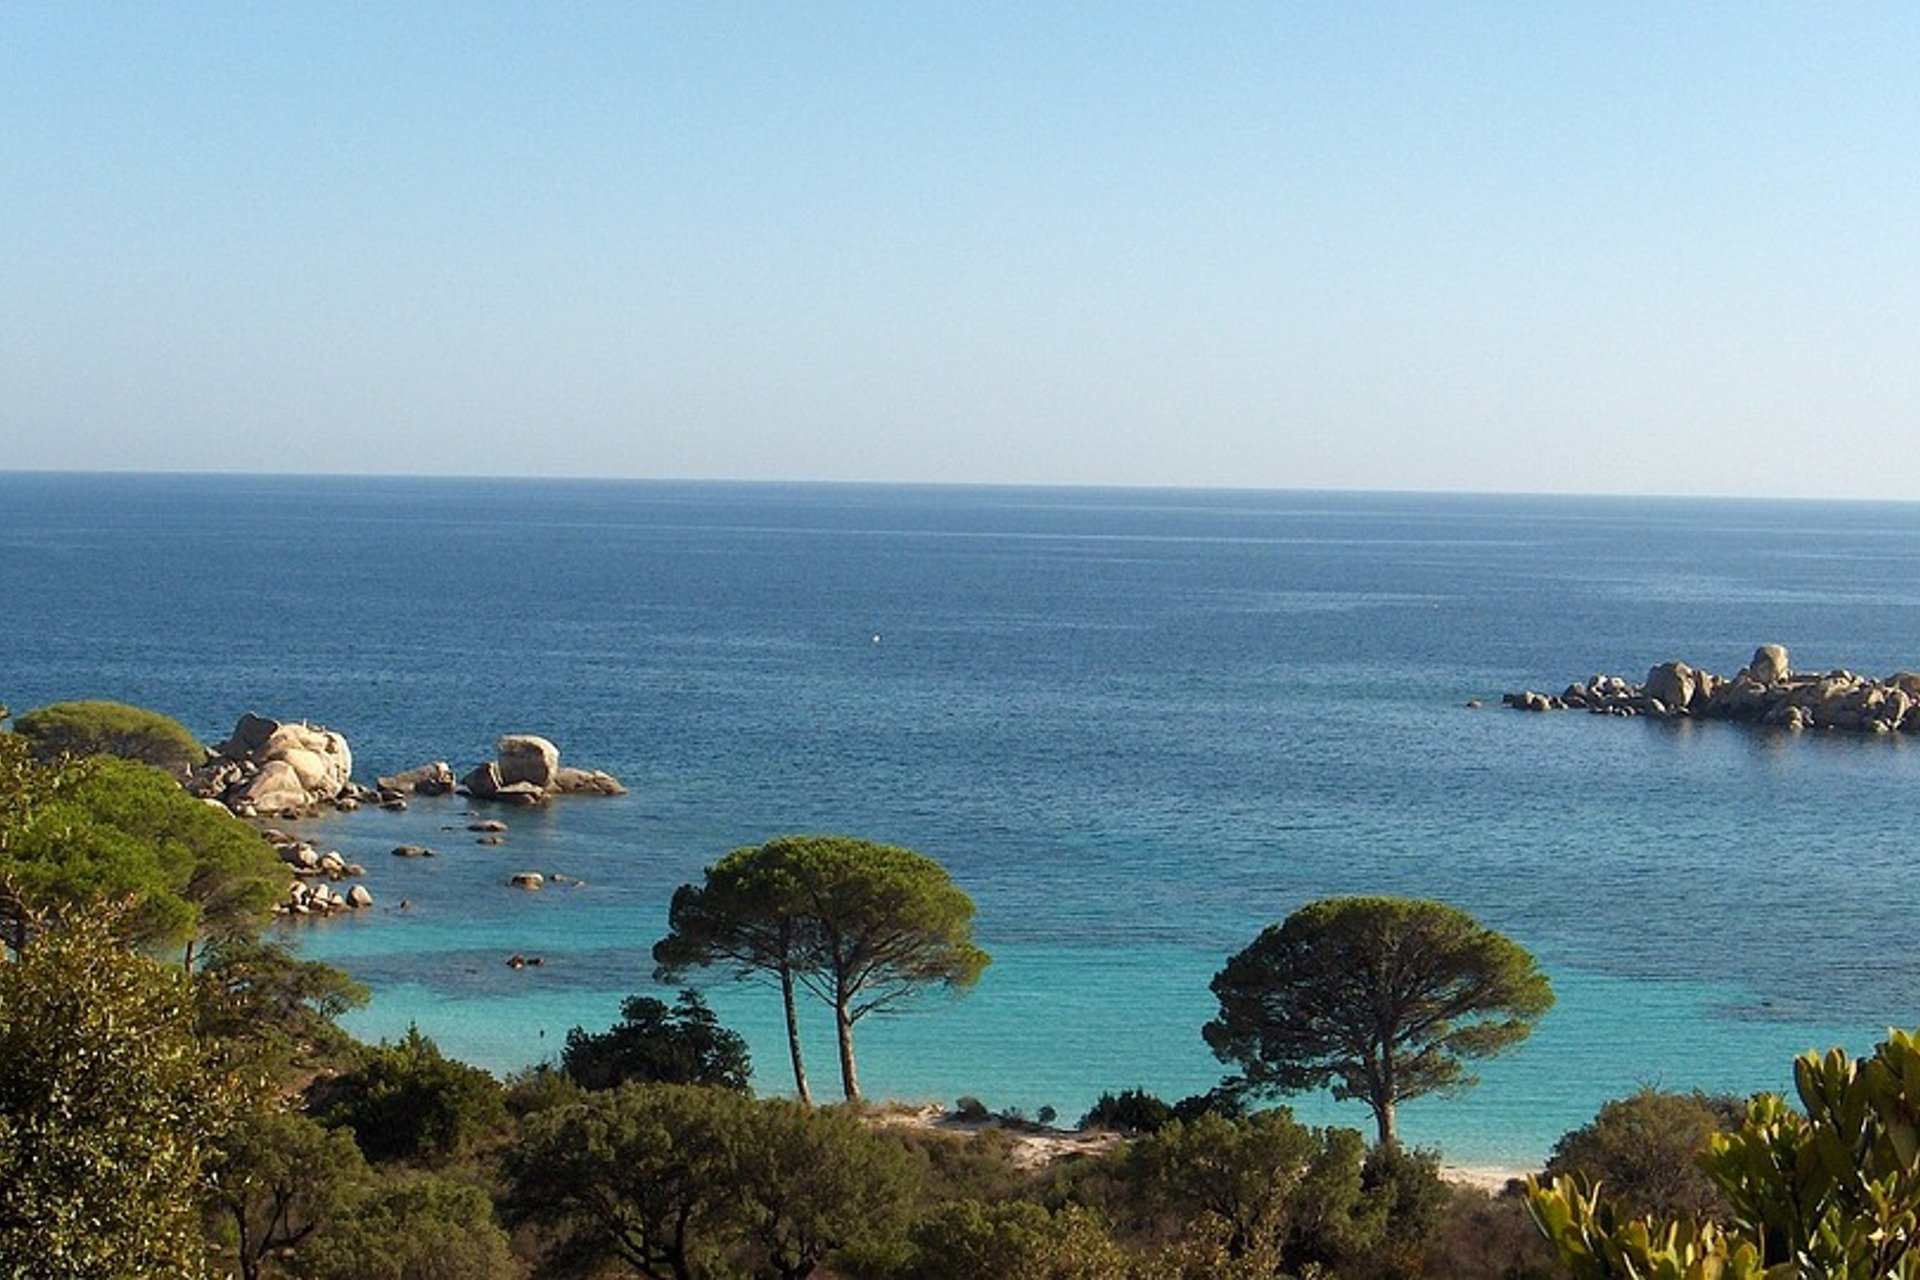 typical landscape of the corsican coast with its blue water and its vegetation